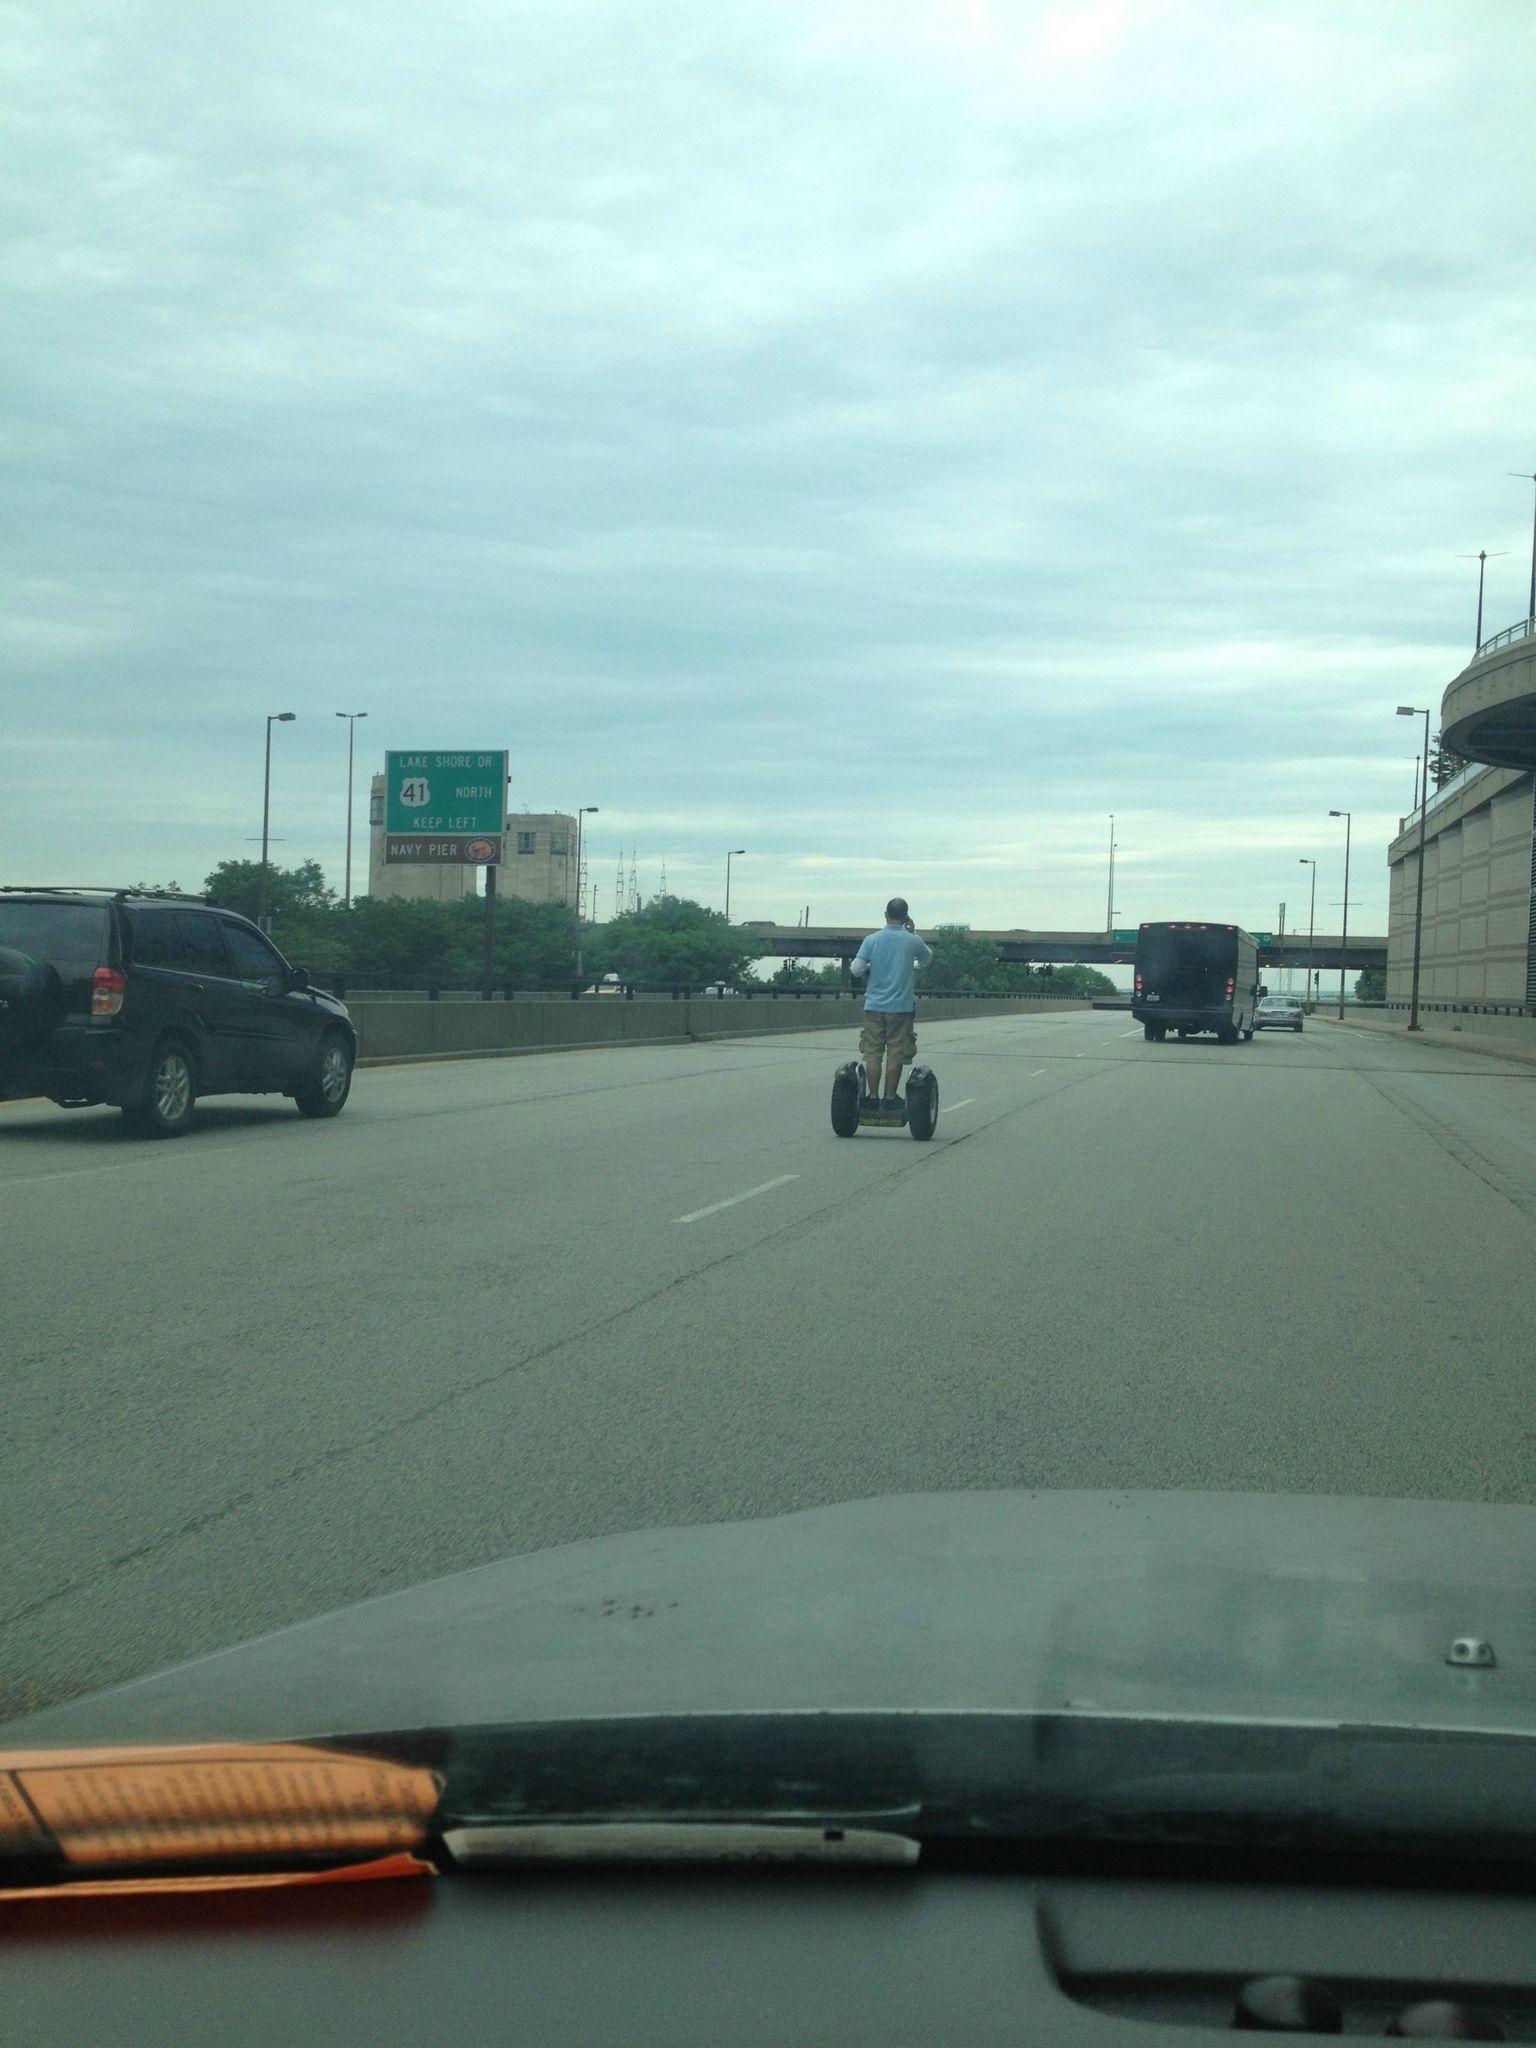 Taken last June, an oblivious Segway rider takes Lake Shore Drive.